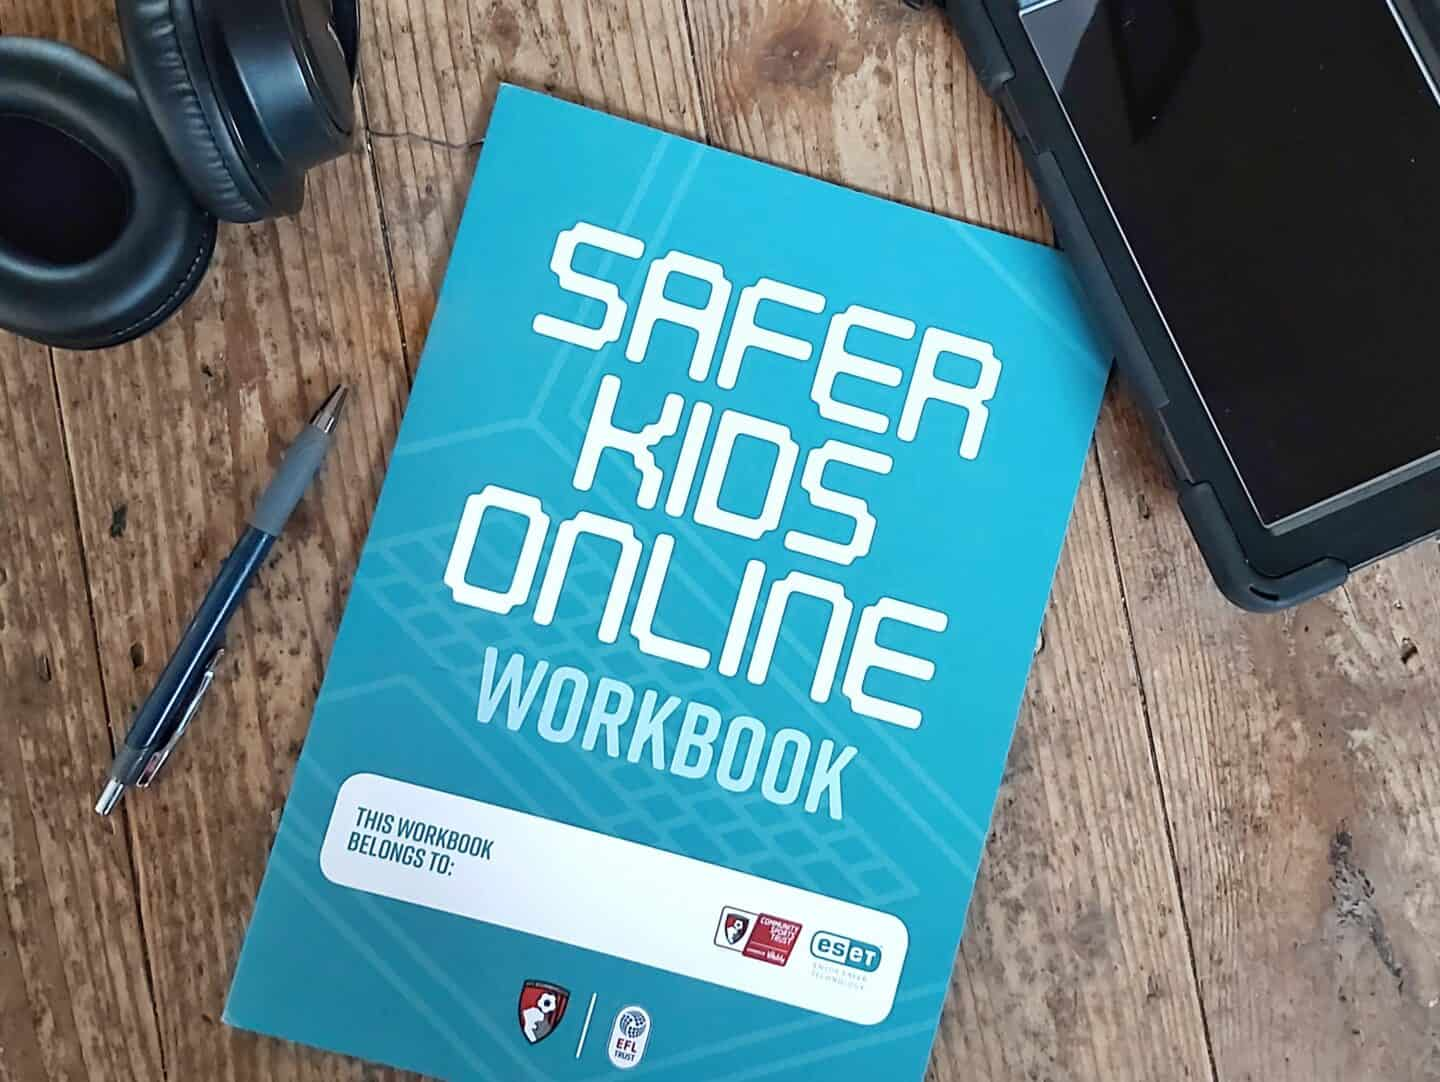 ESET Safer kids online workbook on wooden background with tablet, headphones and phone beside